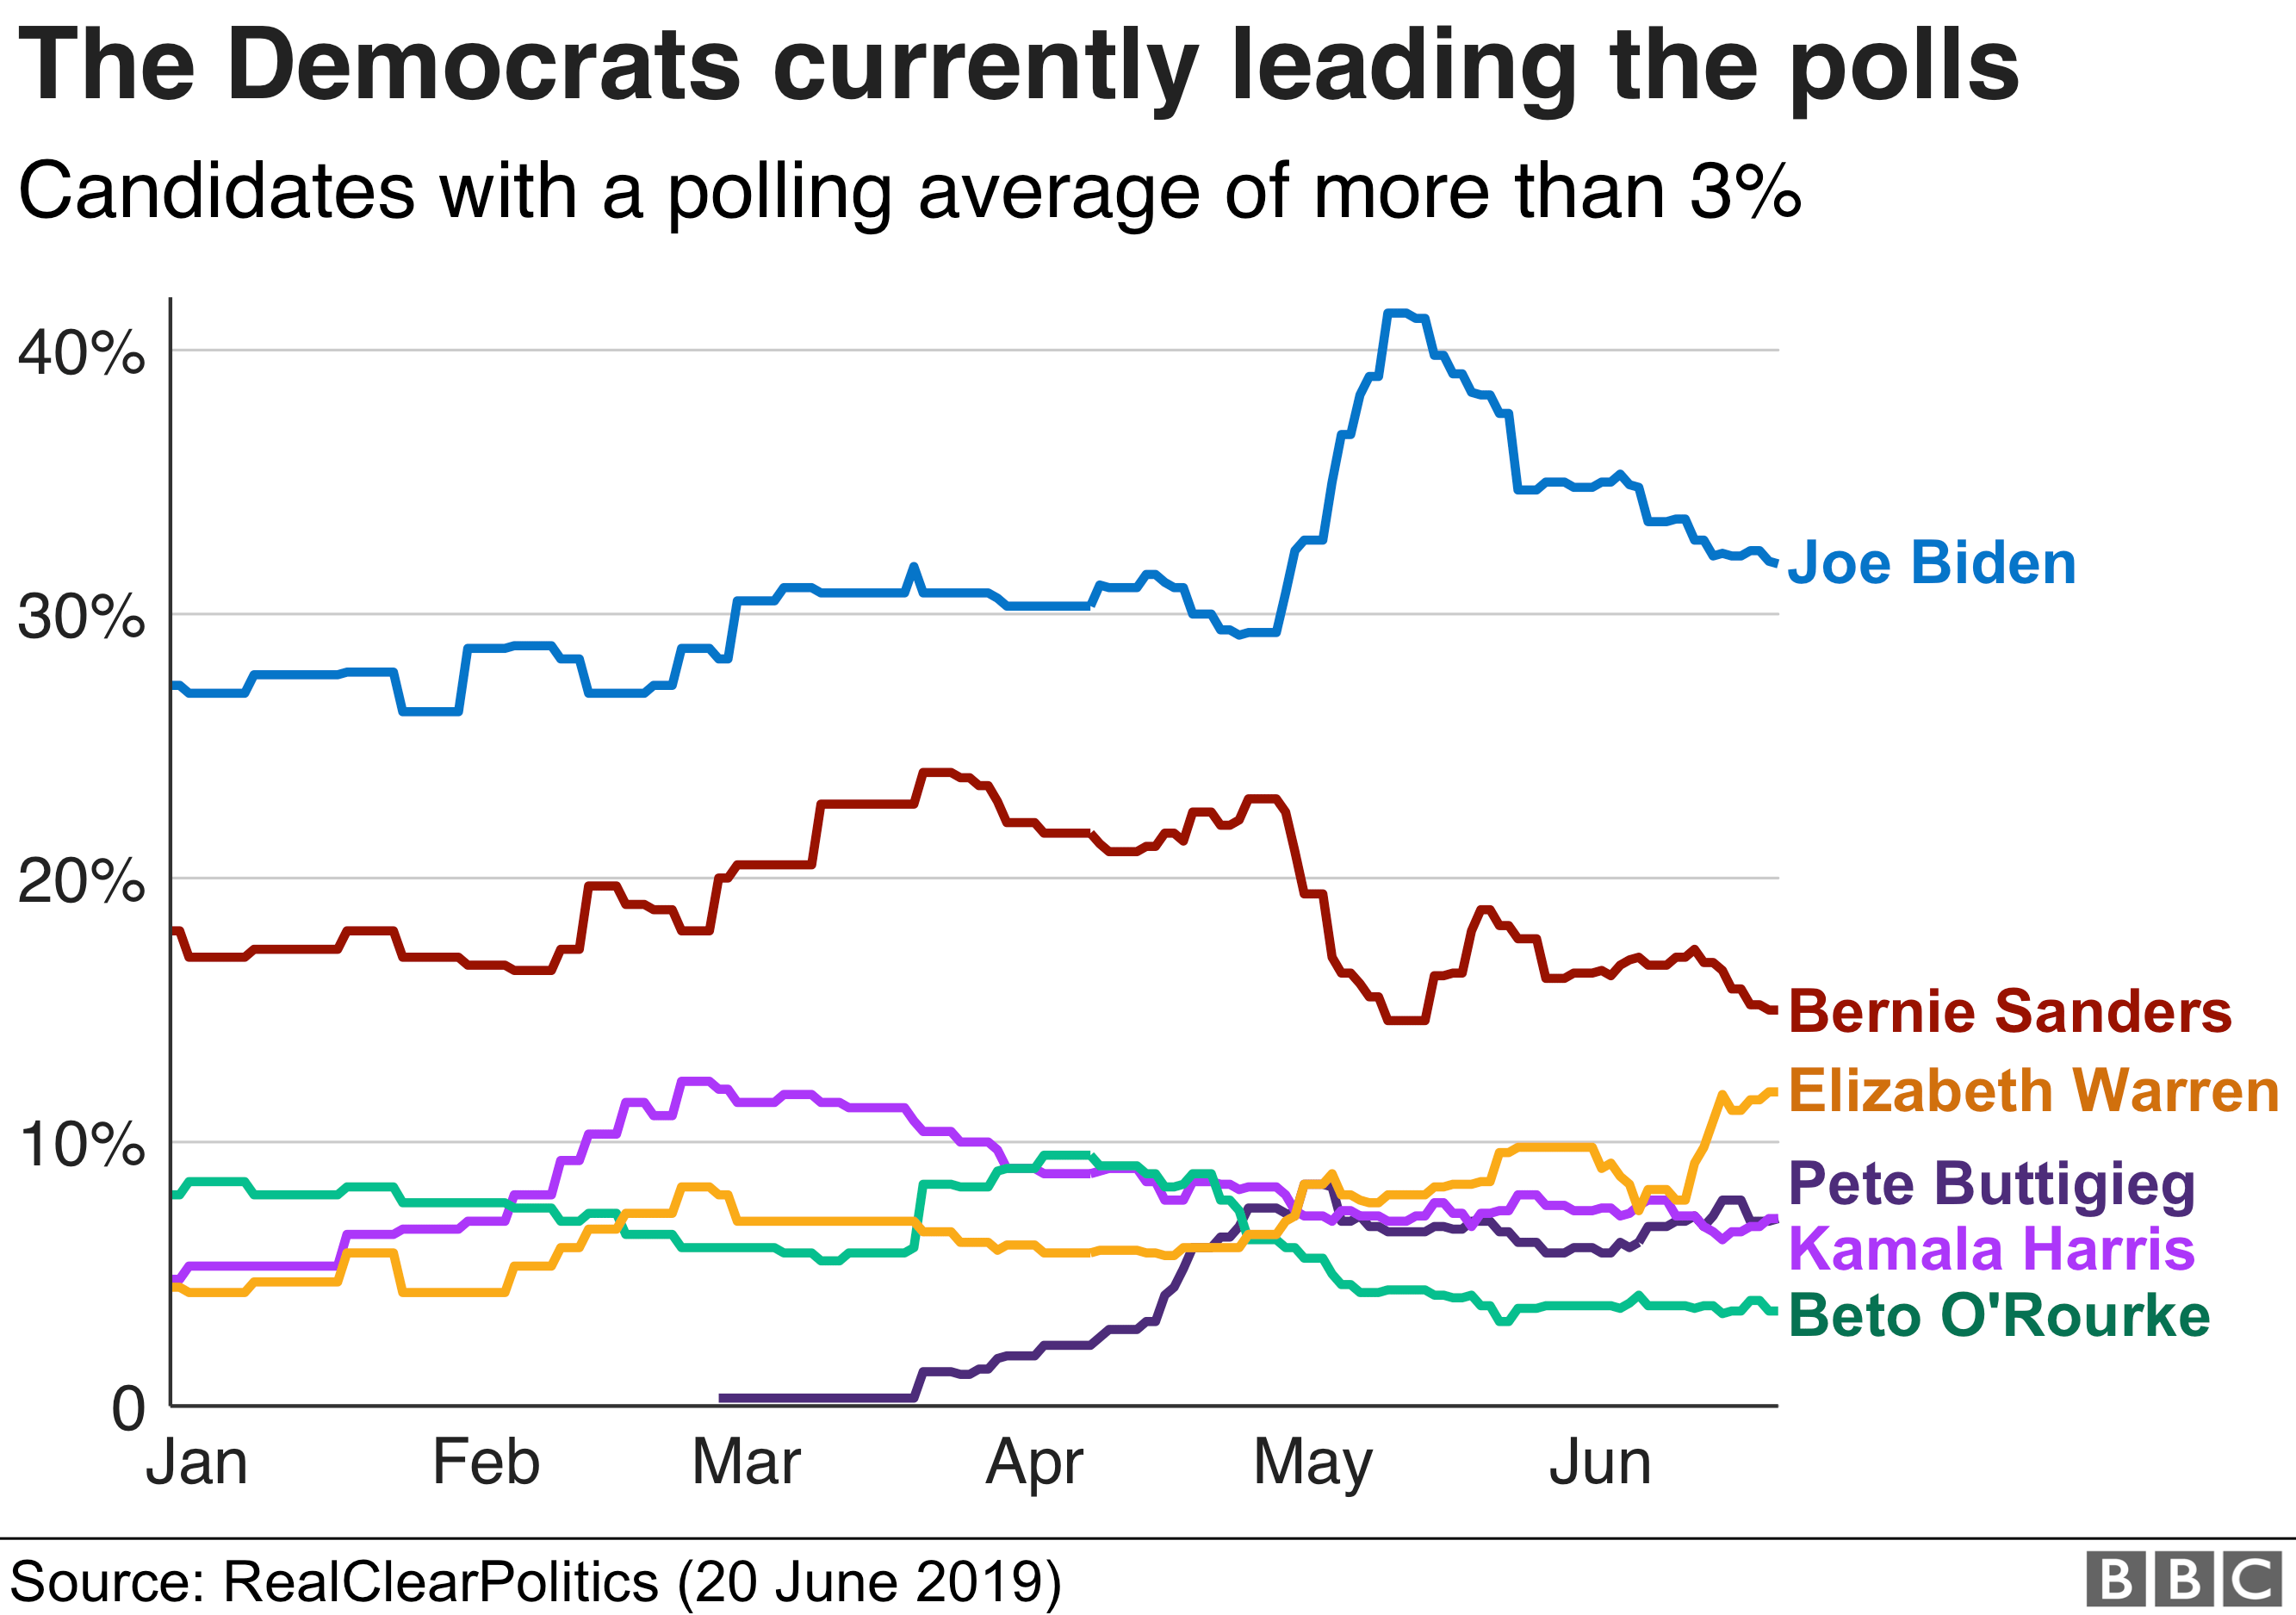 Polling averages of Dems 2020